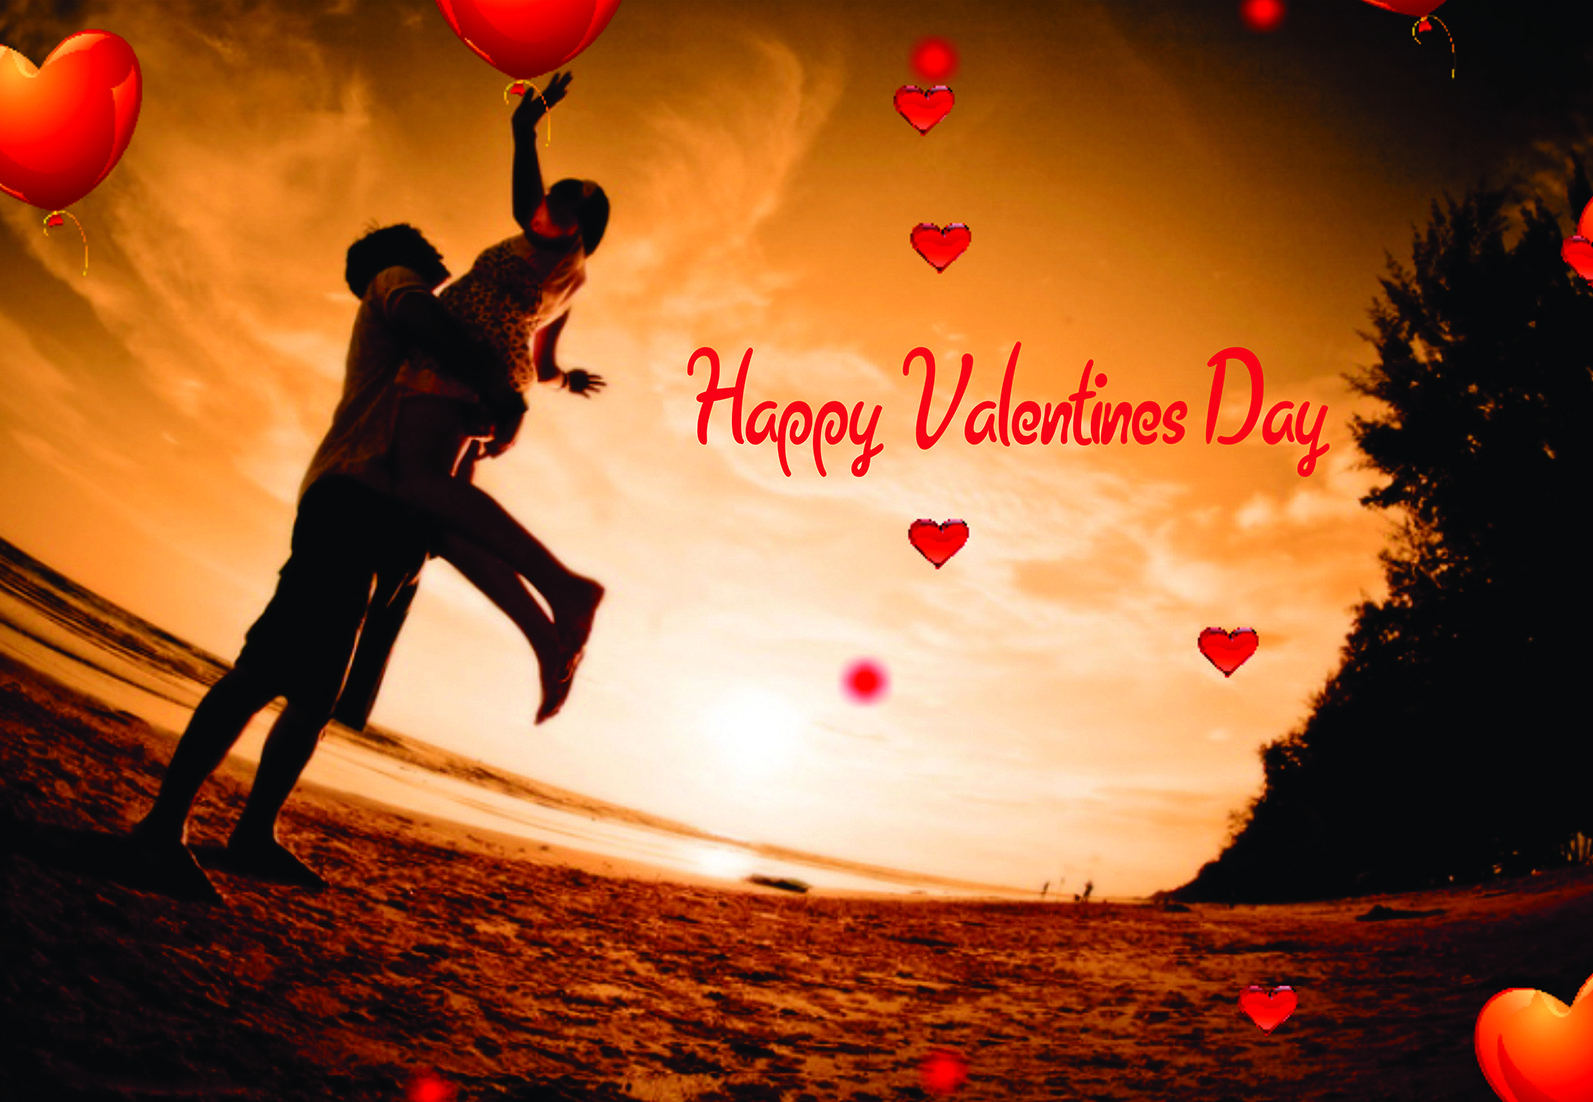 Love Wallpaper Backgrounds For Mobile : Valentine s Day HD Wallpaper